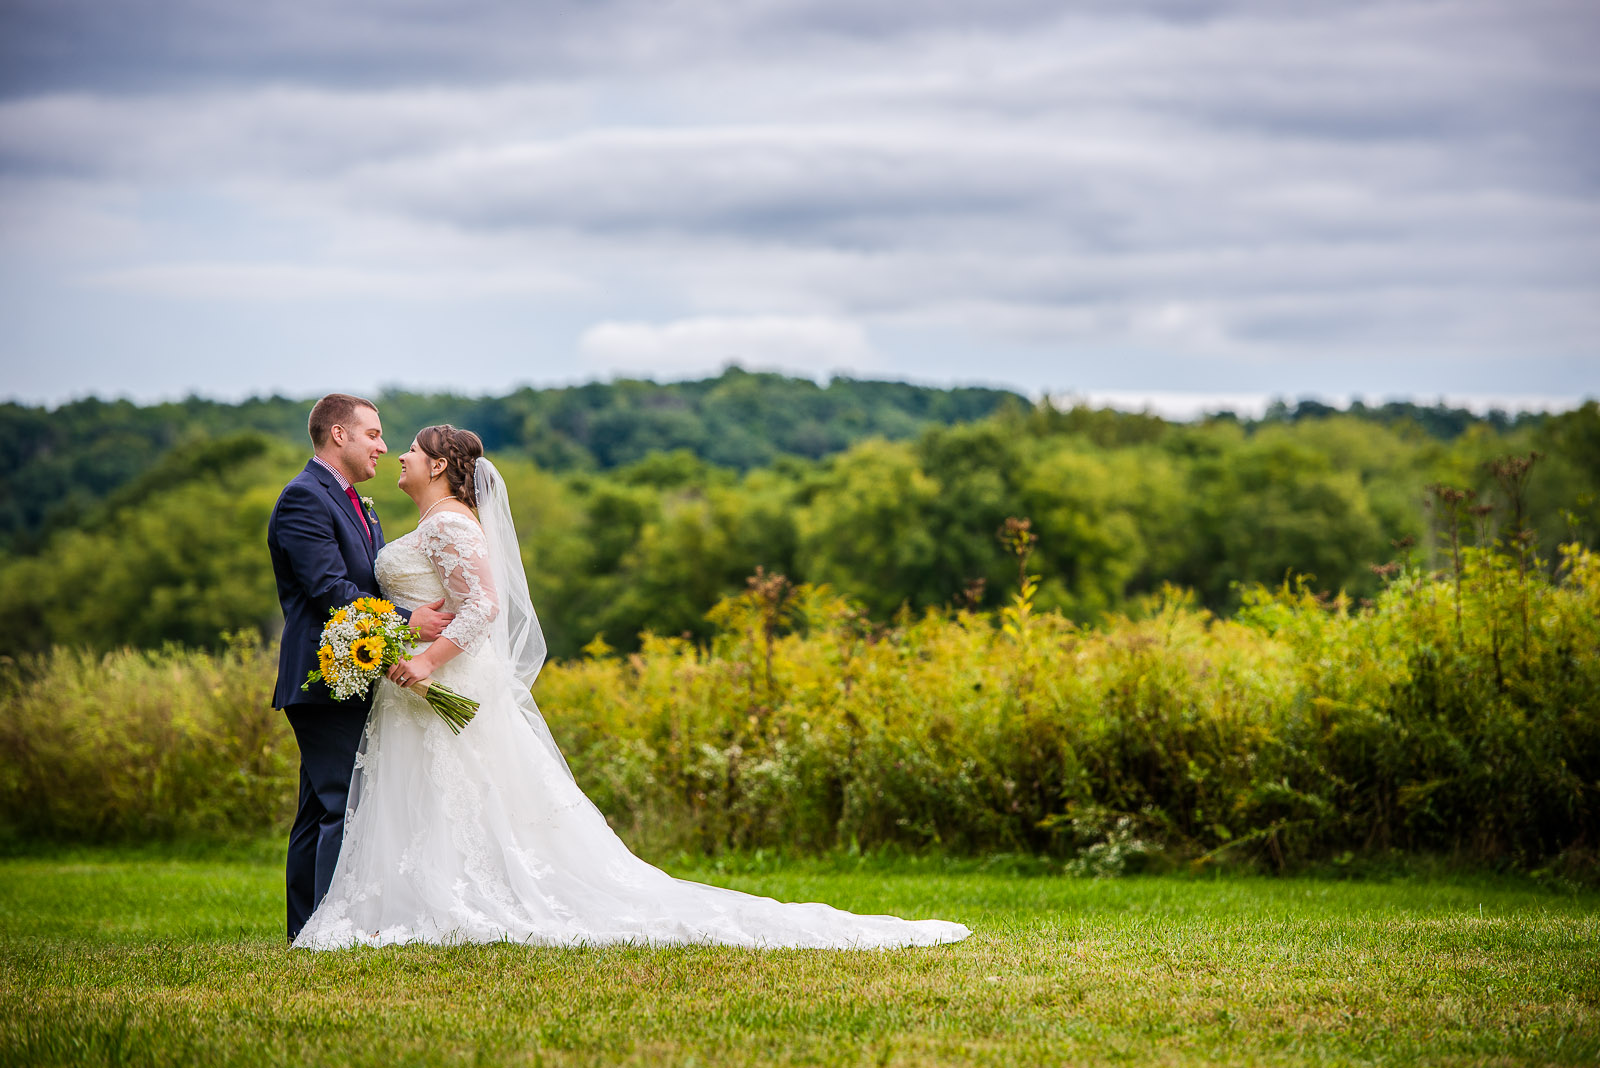 Eric_and_Christy_Photography_Blog_2018_Portraits-27